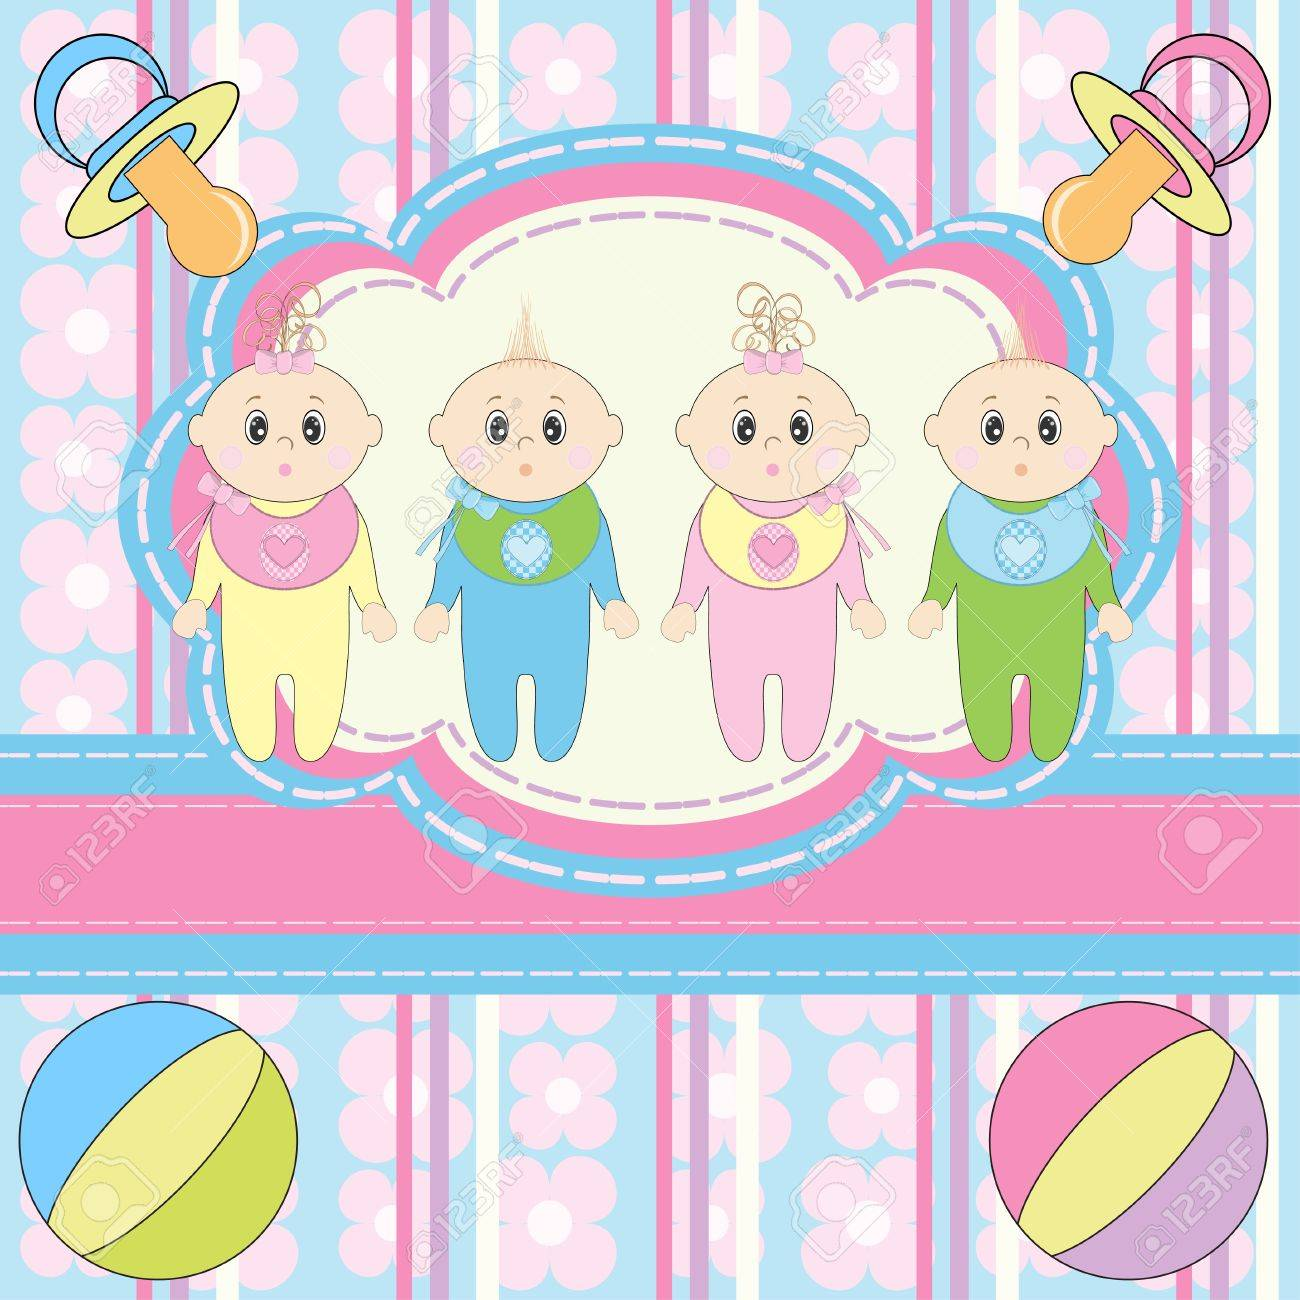 Greeting Card For Four Newborn Babies Royalty Free Cliparts Vectors